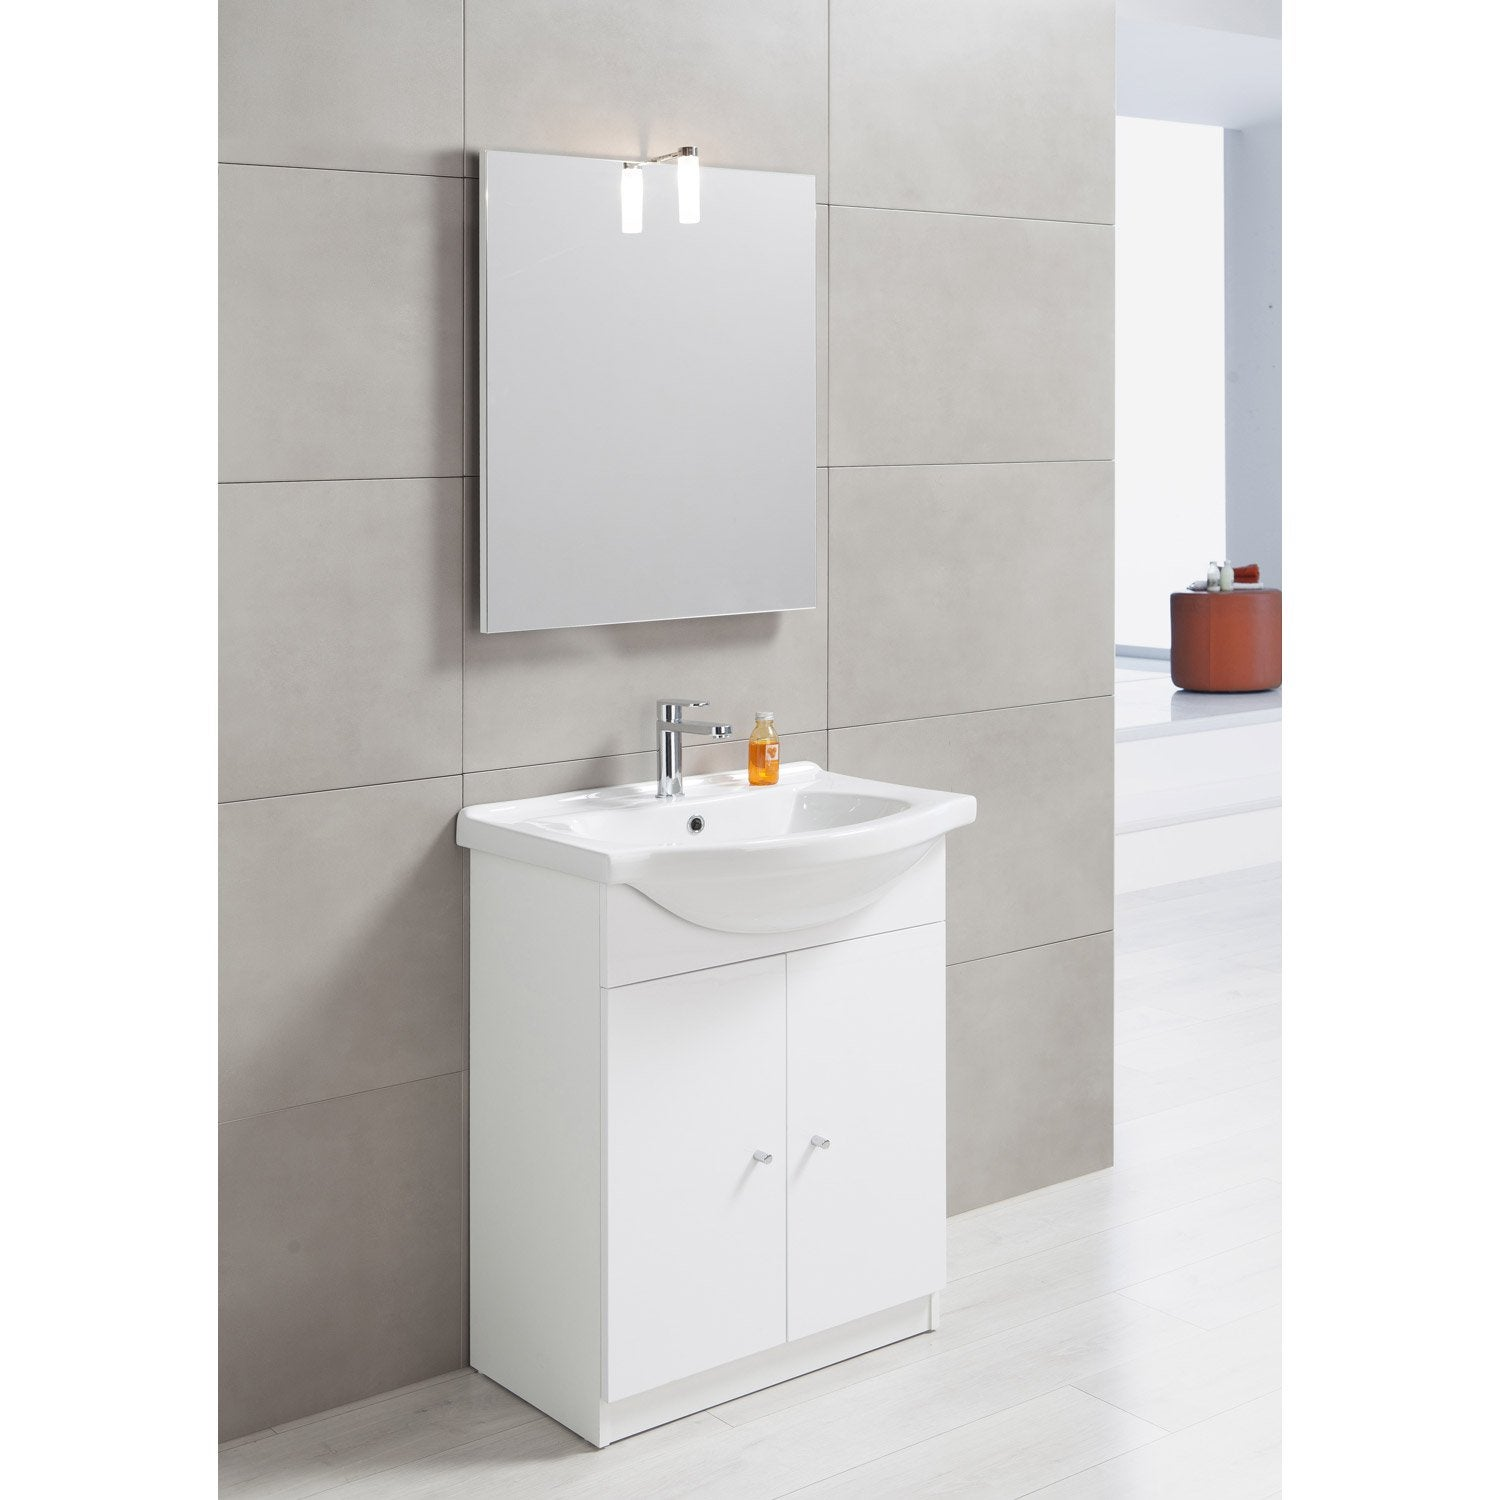 Meuble vasque x x cm blanc bianca leroy for Porte 60 x 60